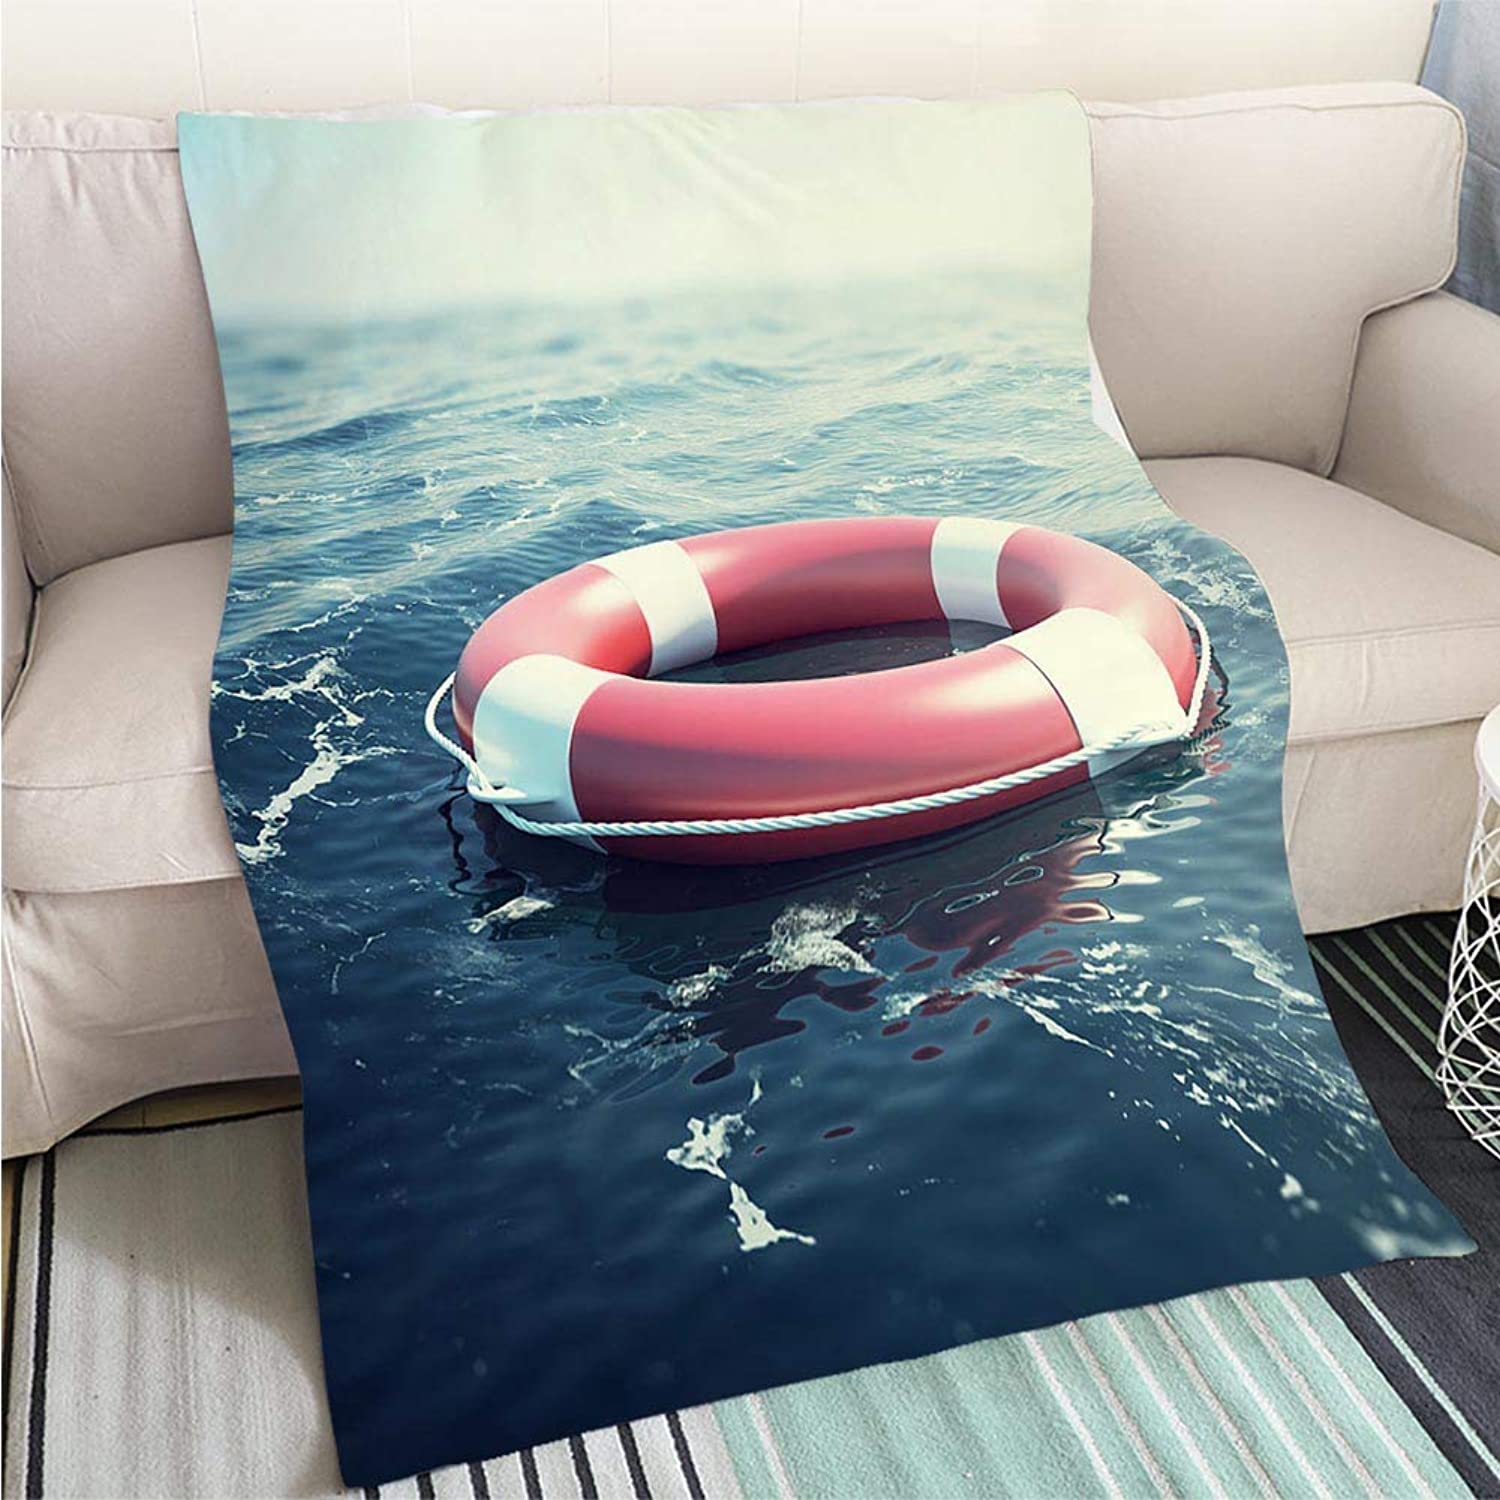 Art Design Photos Cool Quilt Red Lifebuoy Floating in The sea 3D Illustration Hypoallergenic Blanket for Bed Couch Chair